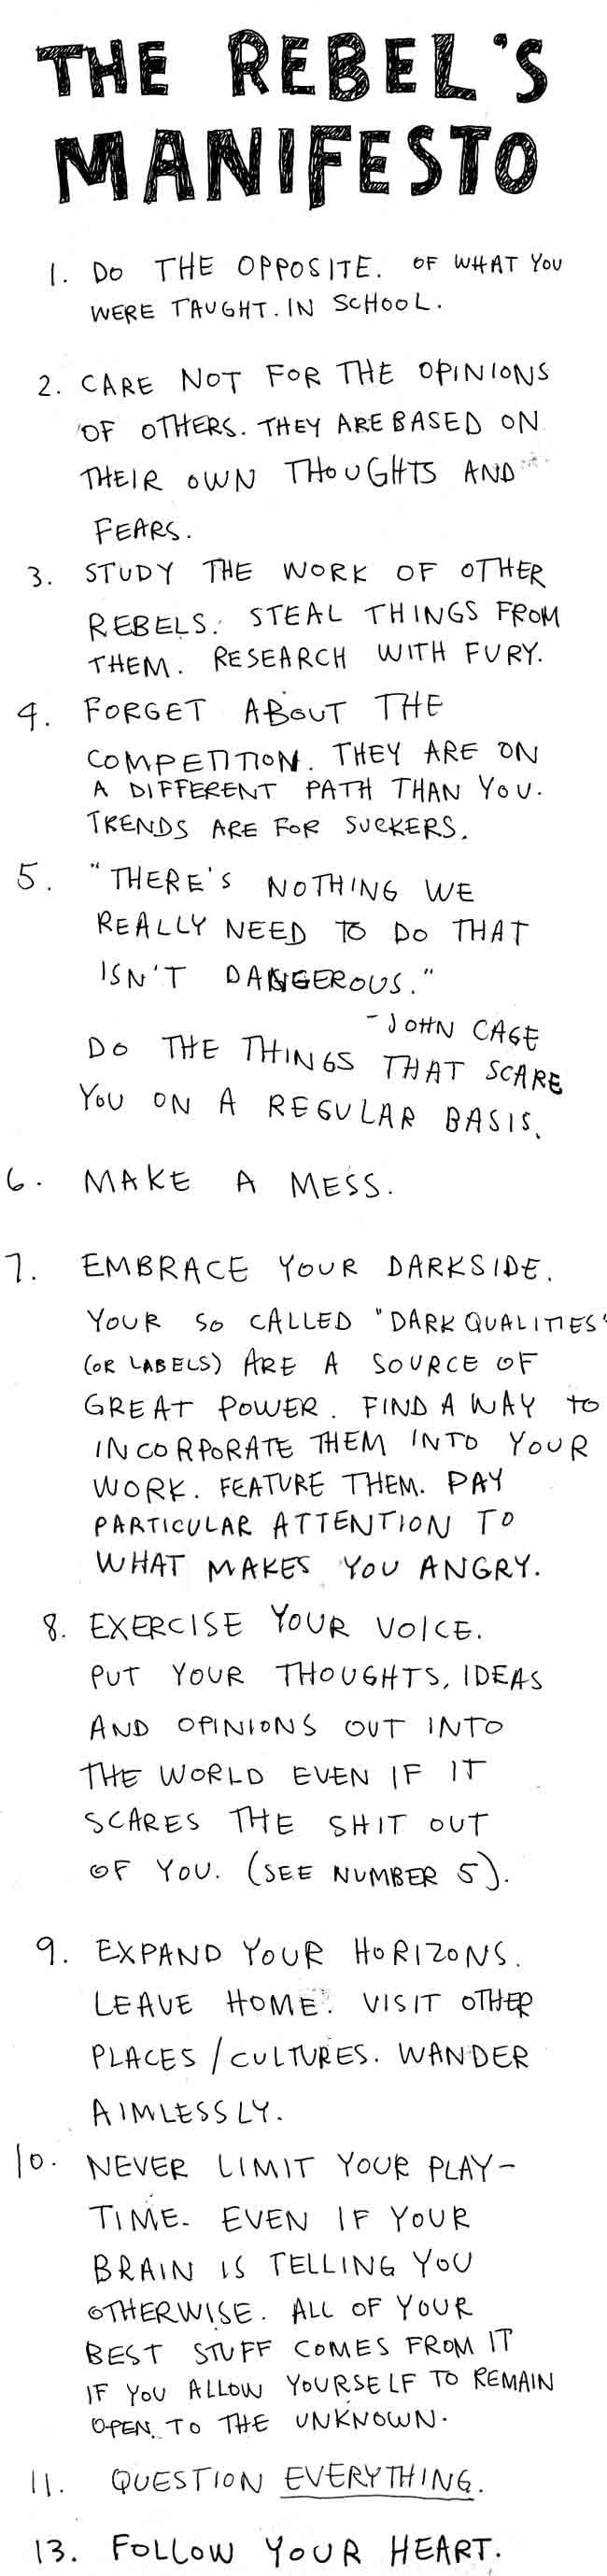 """""""There's nothing we really need to do that isn't dangerous."""" ~ """"Embrace your darkside."""""""